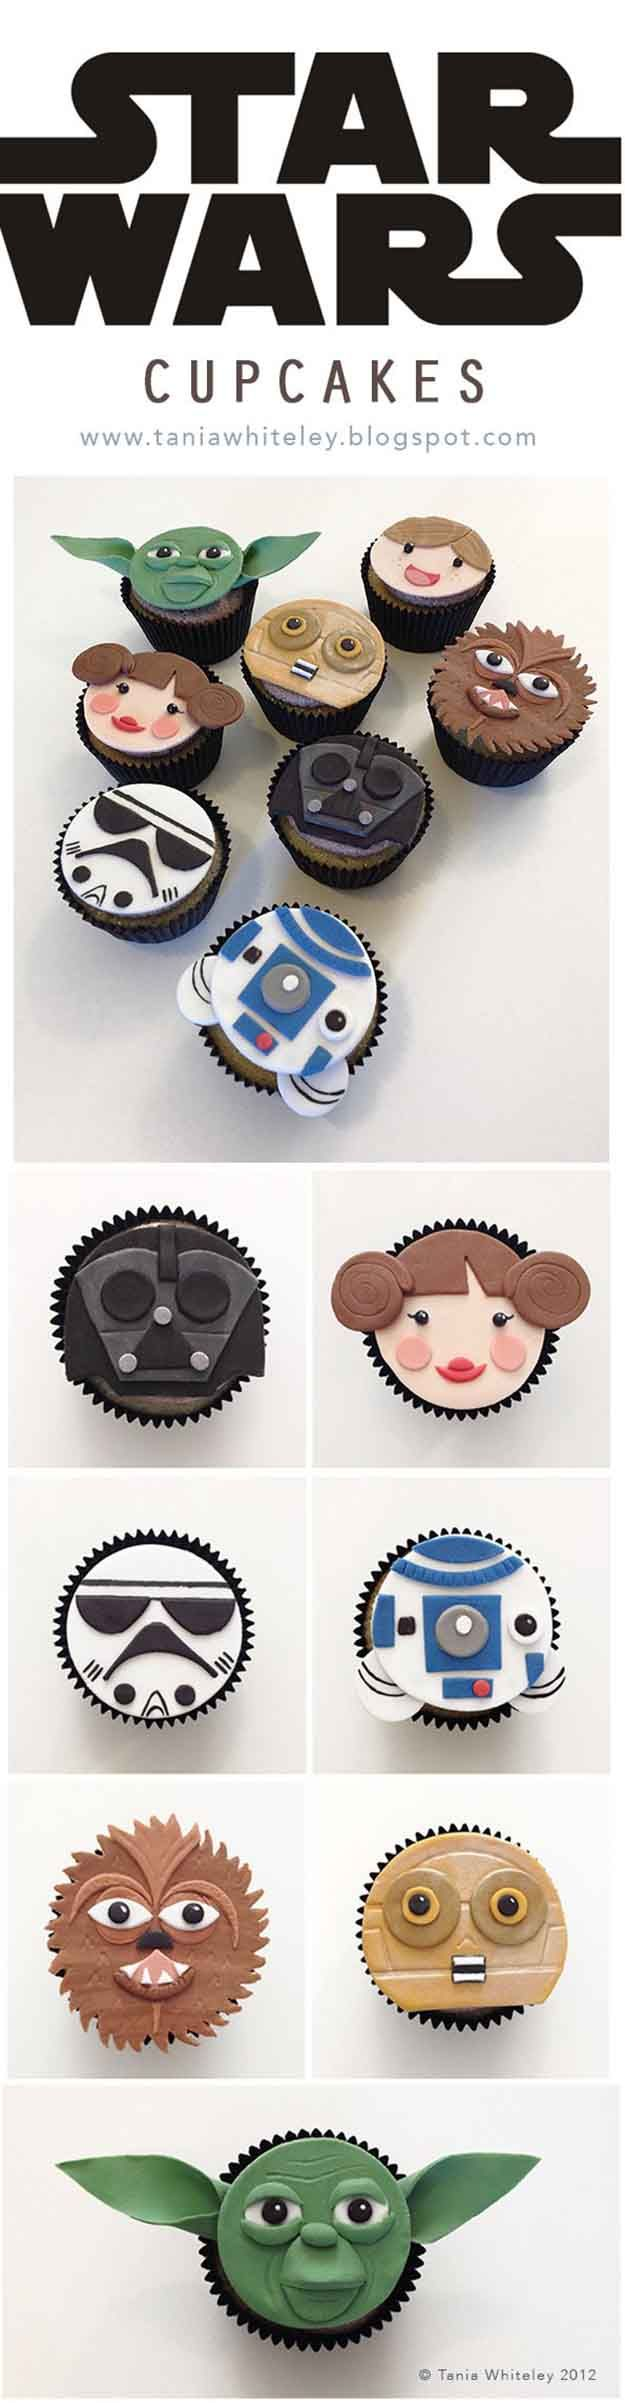 Adorable Star Wars Cupcakes | DIY Star Wars Crafts to Celebrate Force Awakens Premiere, check it out at